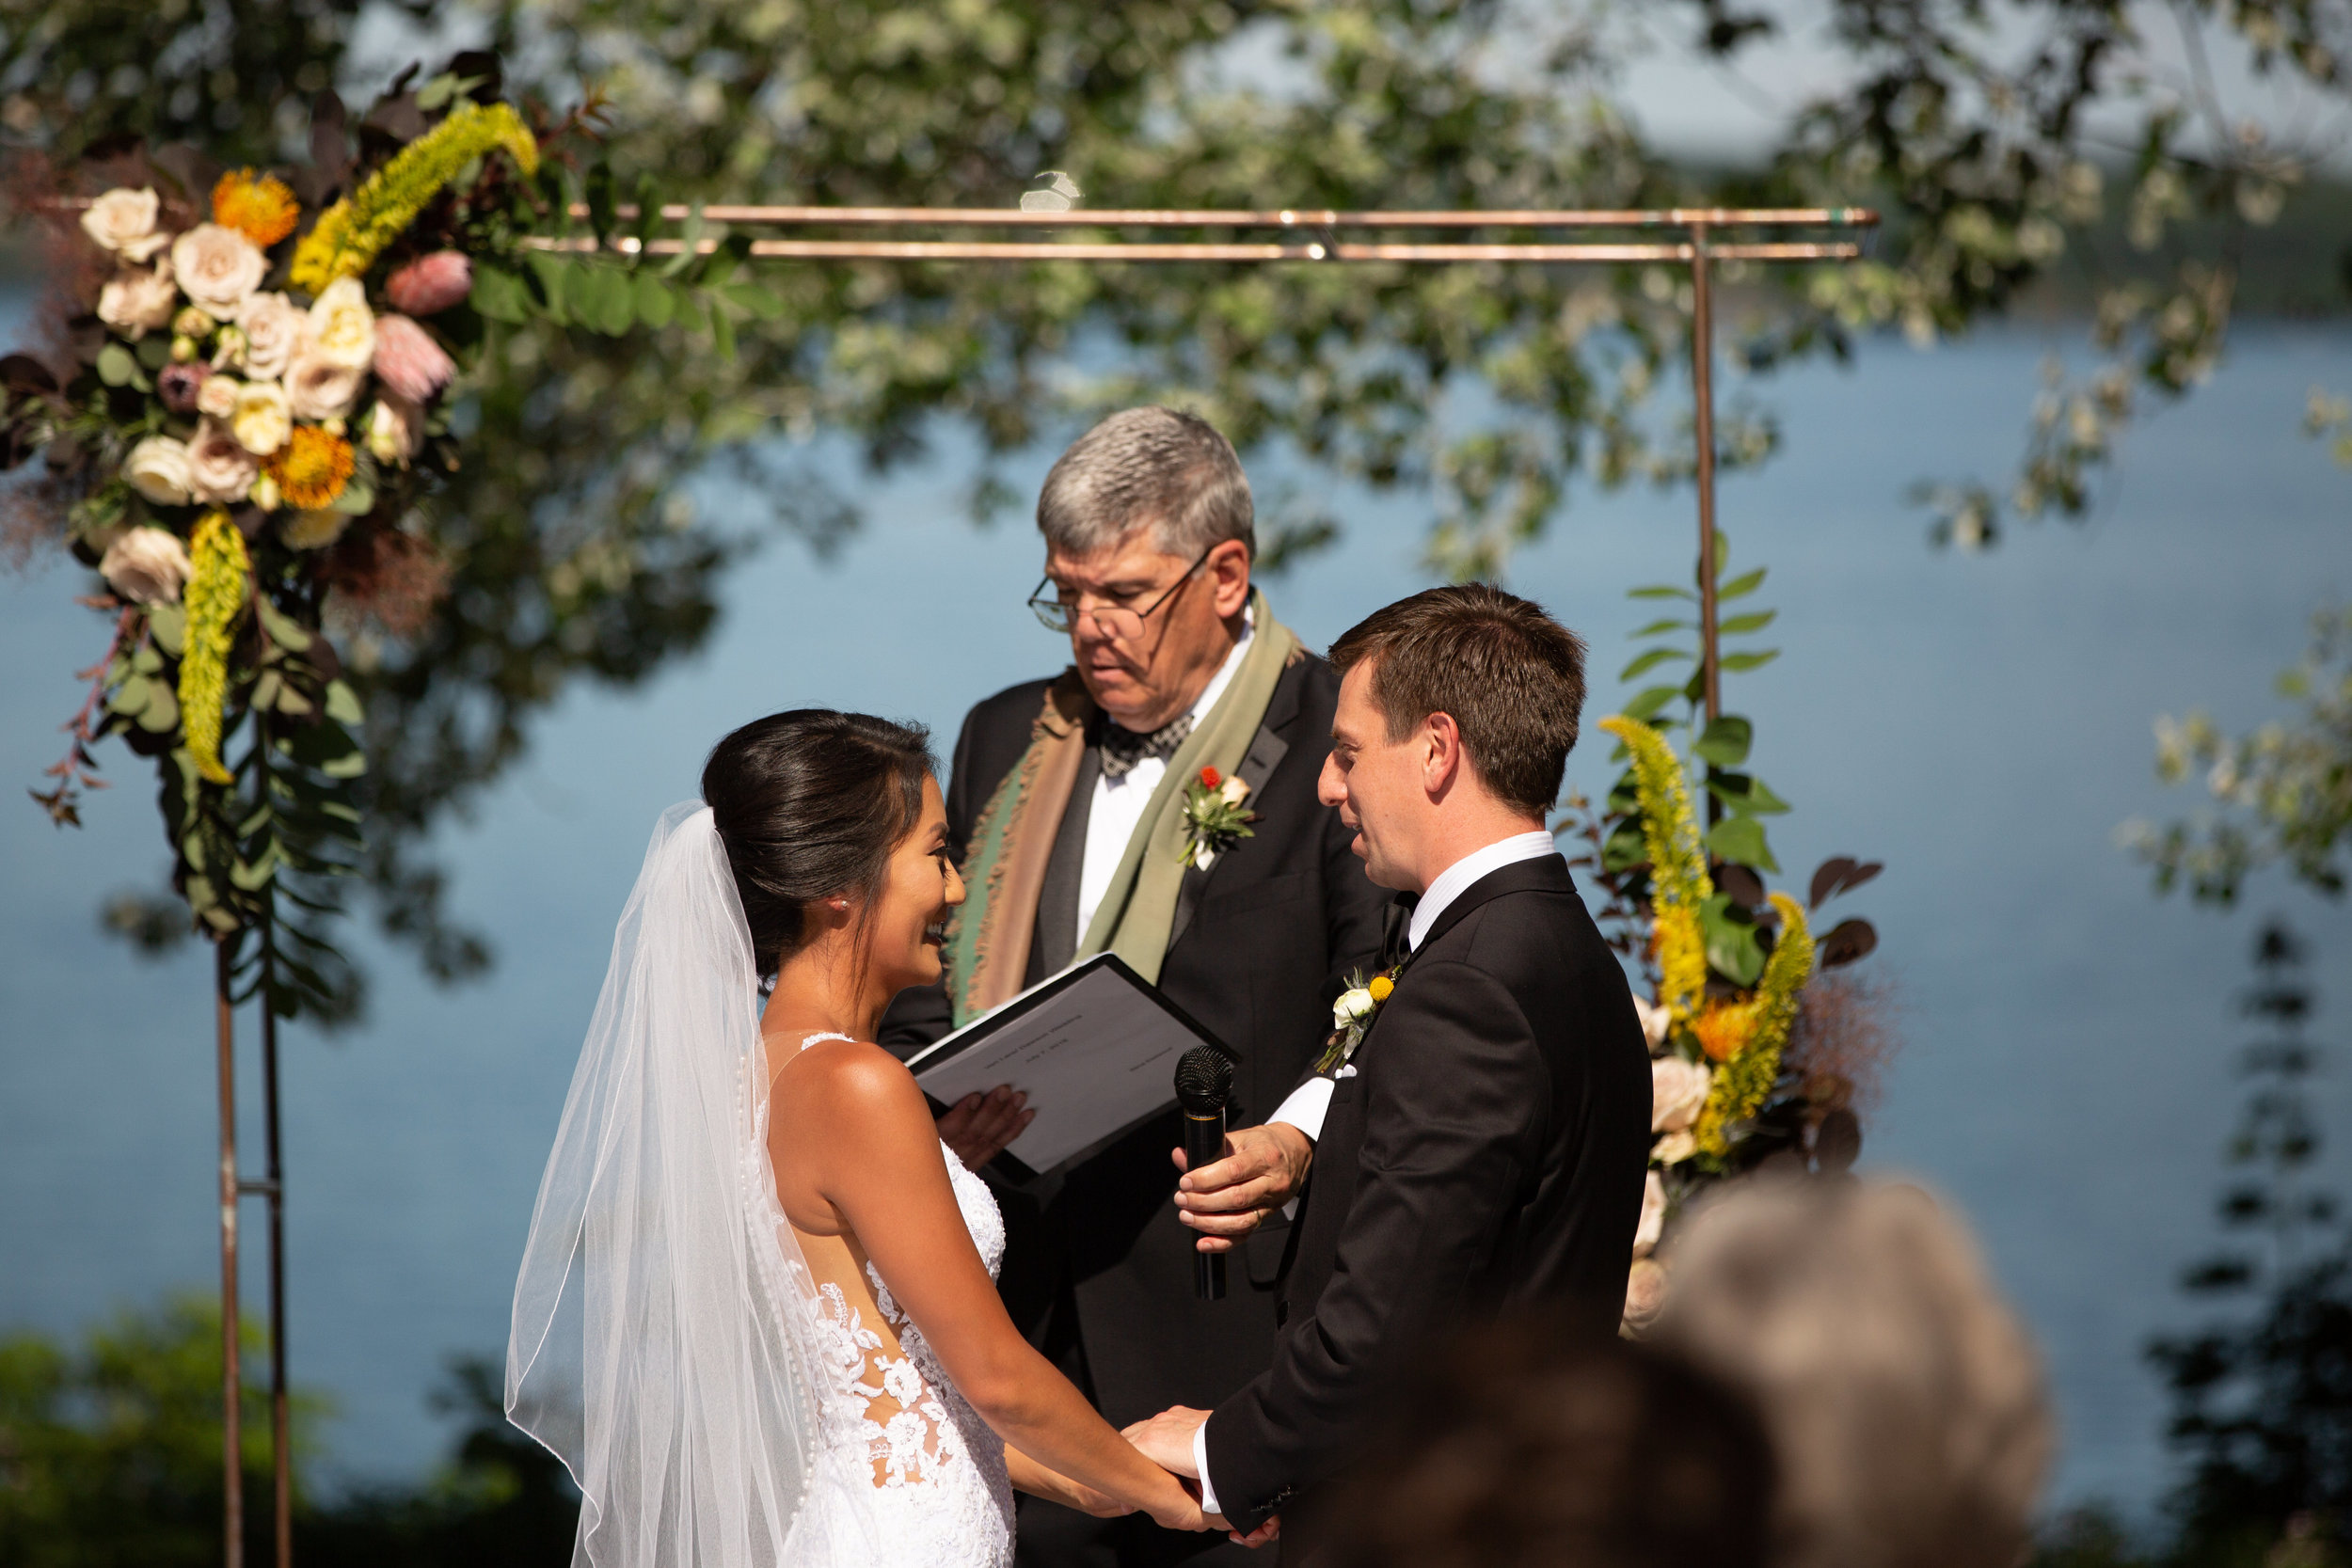 EmilyandBrian_Ceremony-114.jpg